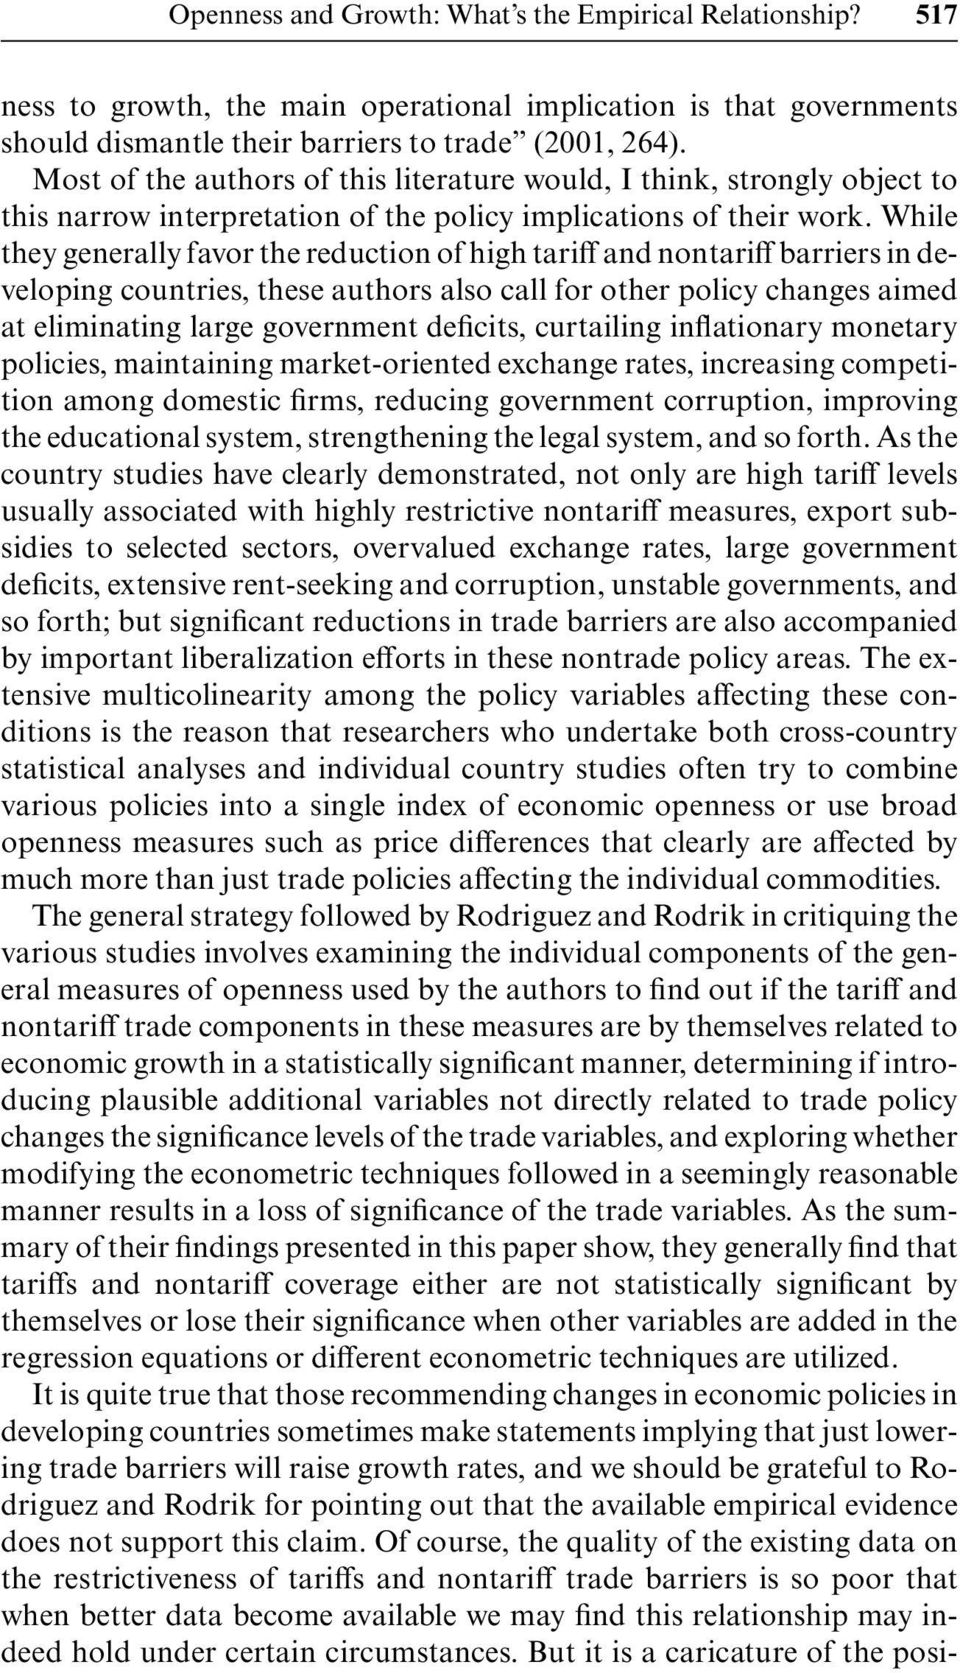 While they generally favor the reduction of high tariff and nontariff barriers in developing countries, these authors also call for other policy changes aimed at eliminating large government